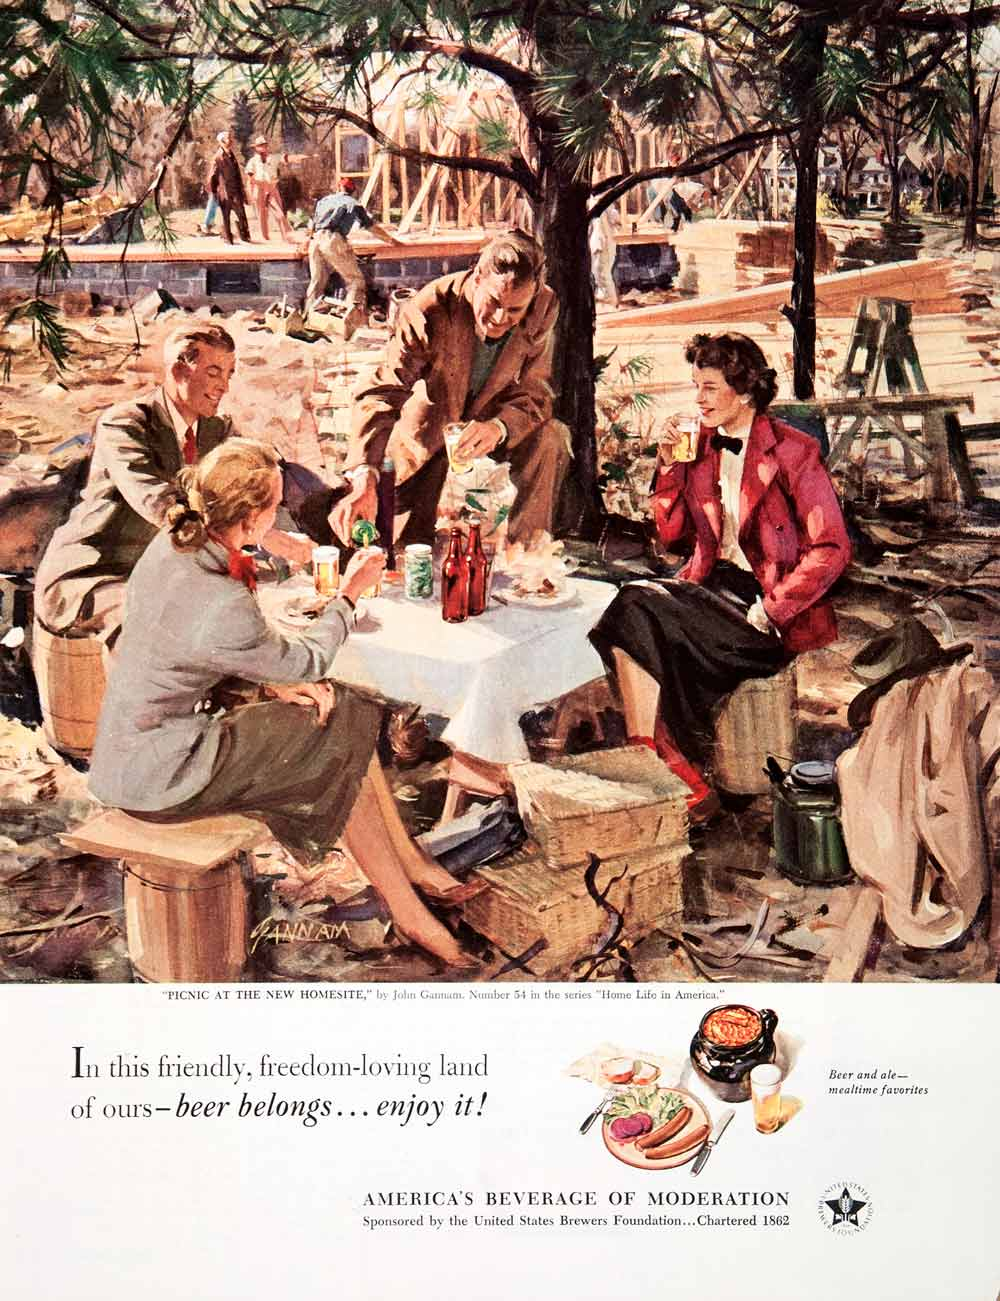 1951 Ad United States Brewers Beer John Gannam Picnic Alcohol Construction COLL3